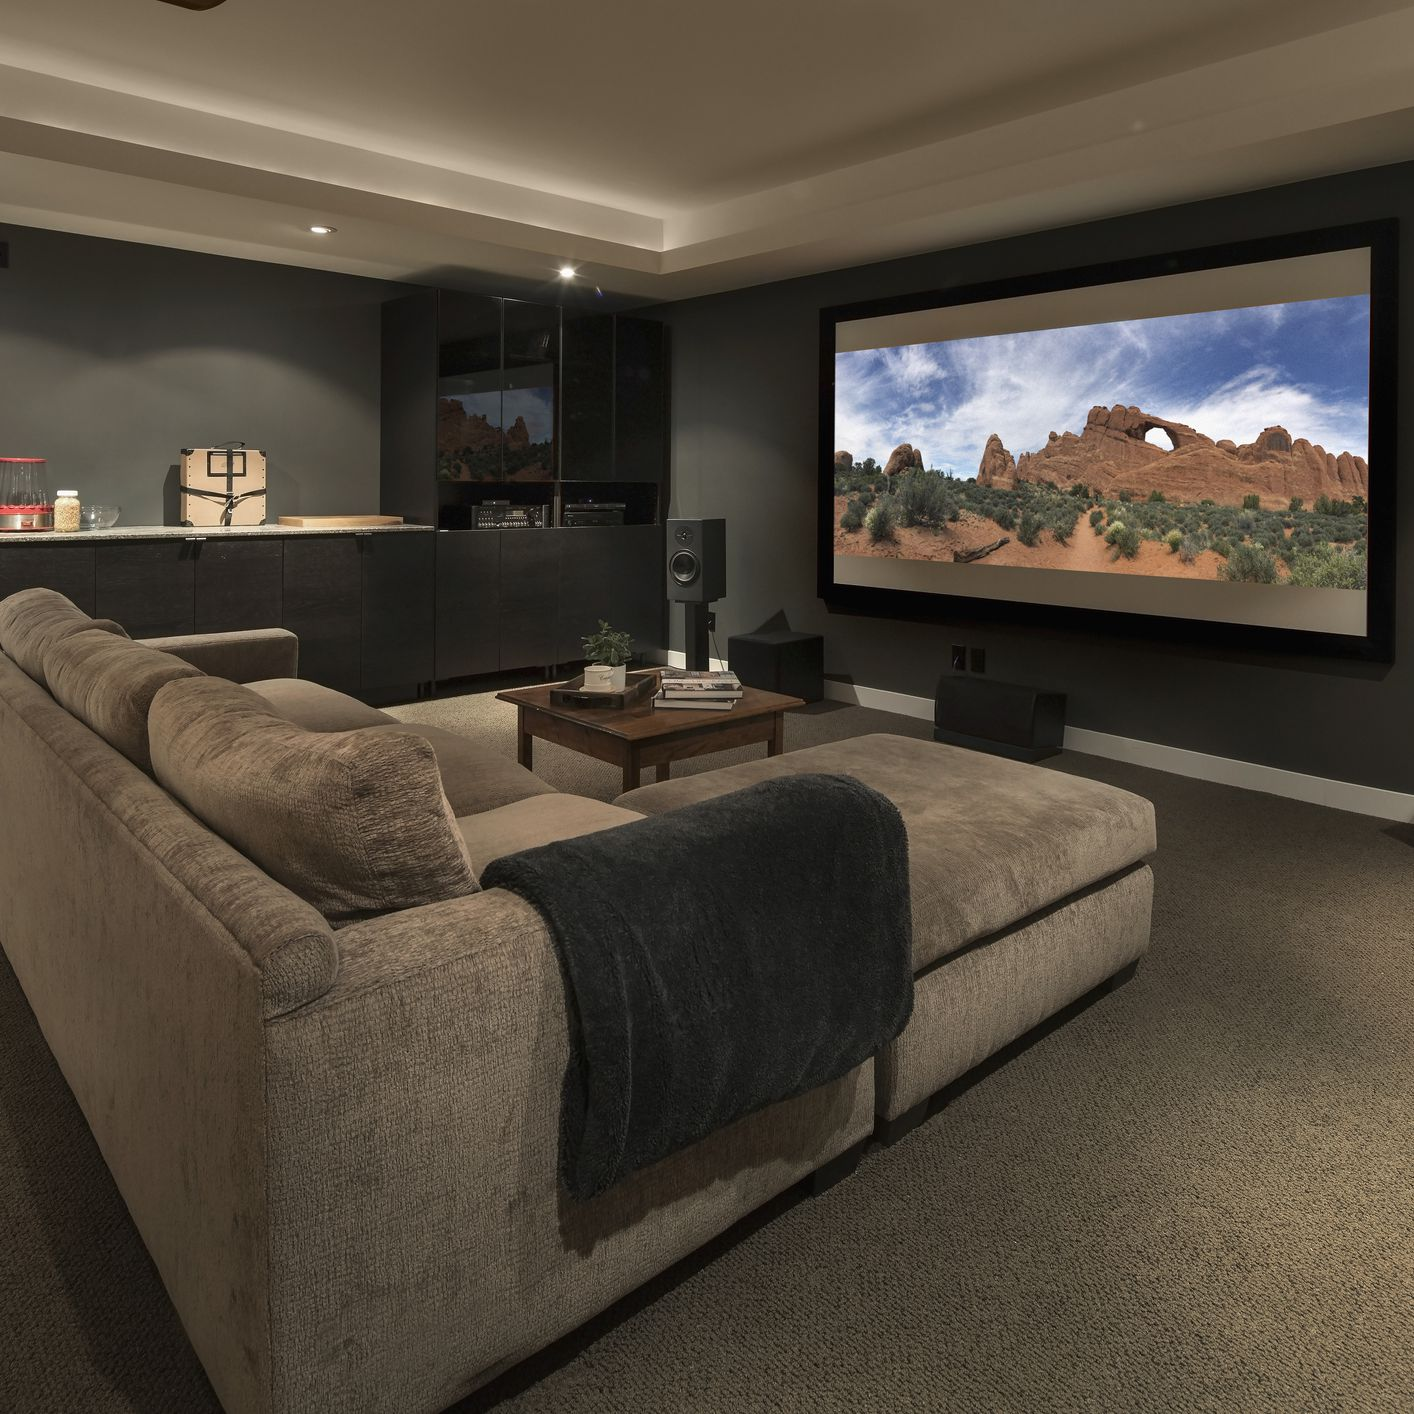 The 7 Best Home Theater Systems of 2019